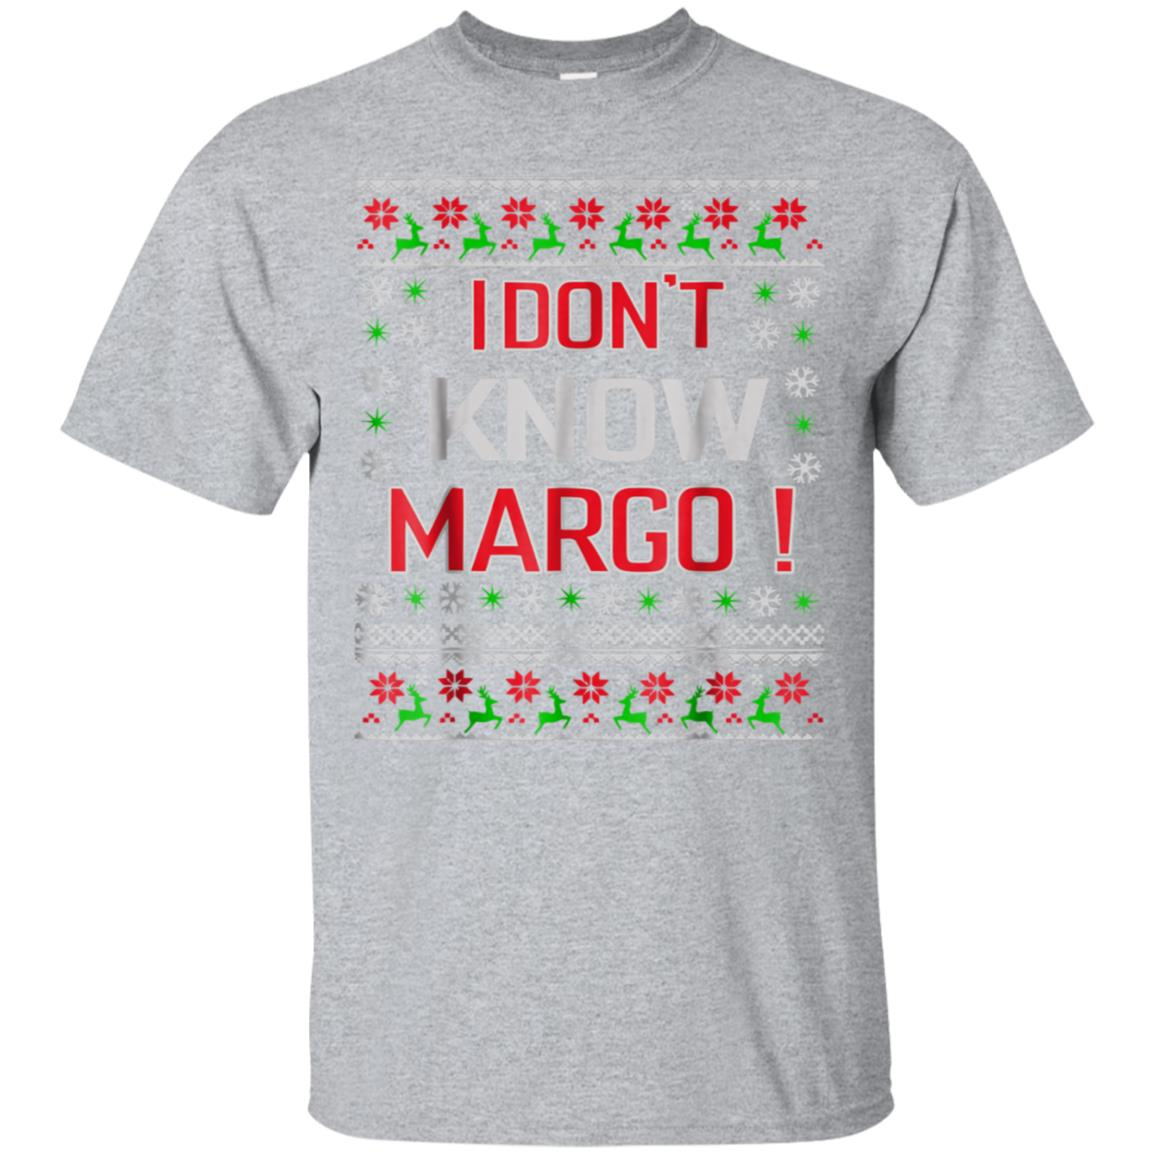 I Don t Know Margo - Funny Christmas Vacation T-Shirt 99promocode